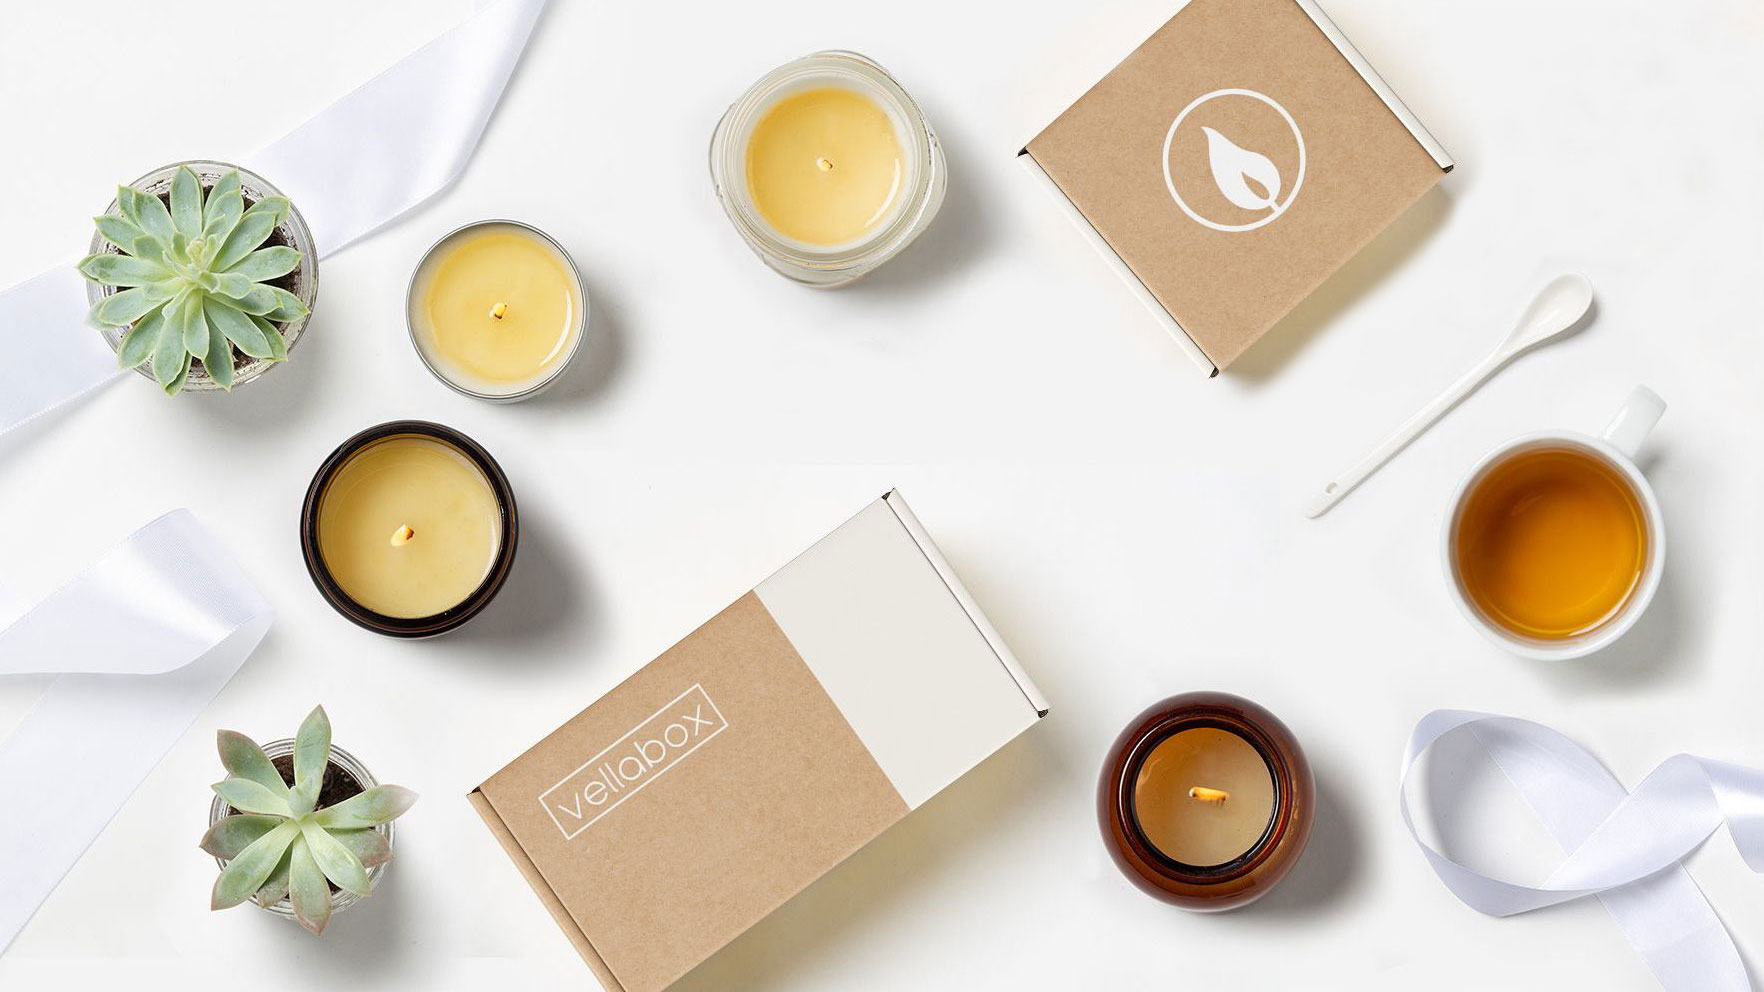 Best hostess gifts, ideas - Vellabox Candle subscription service